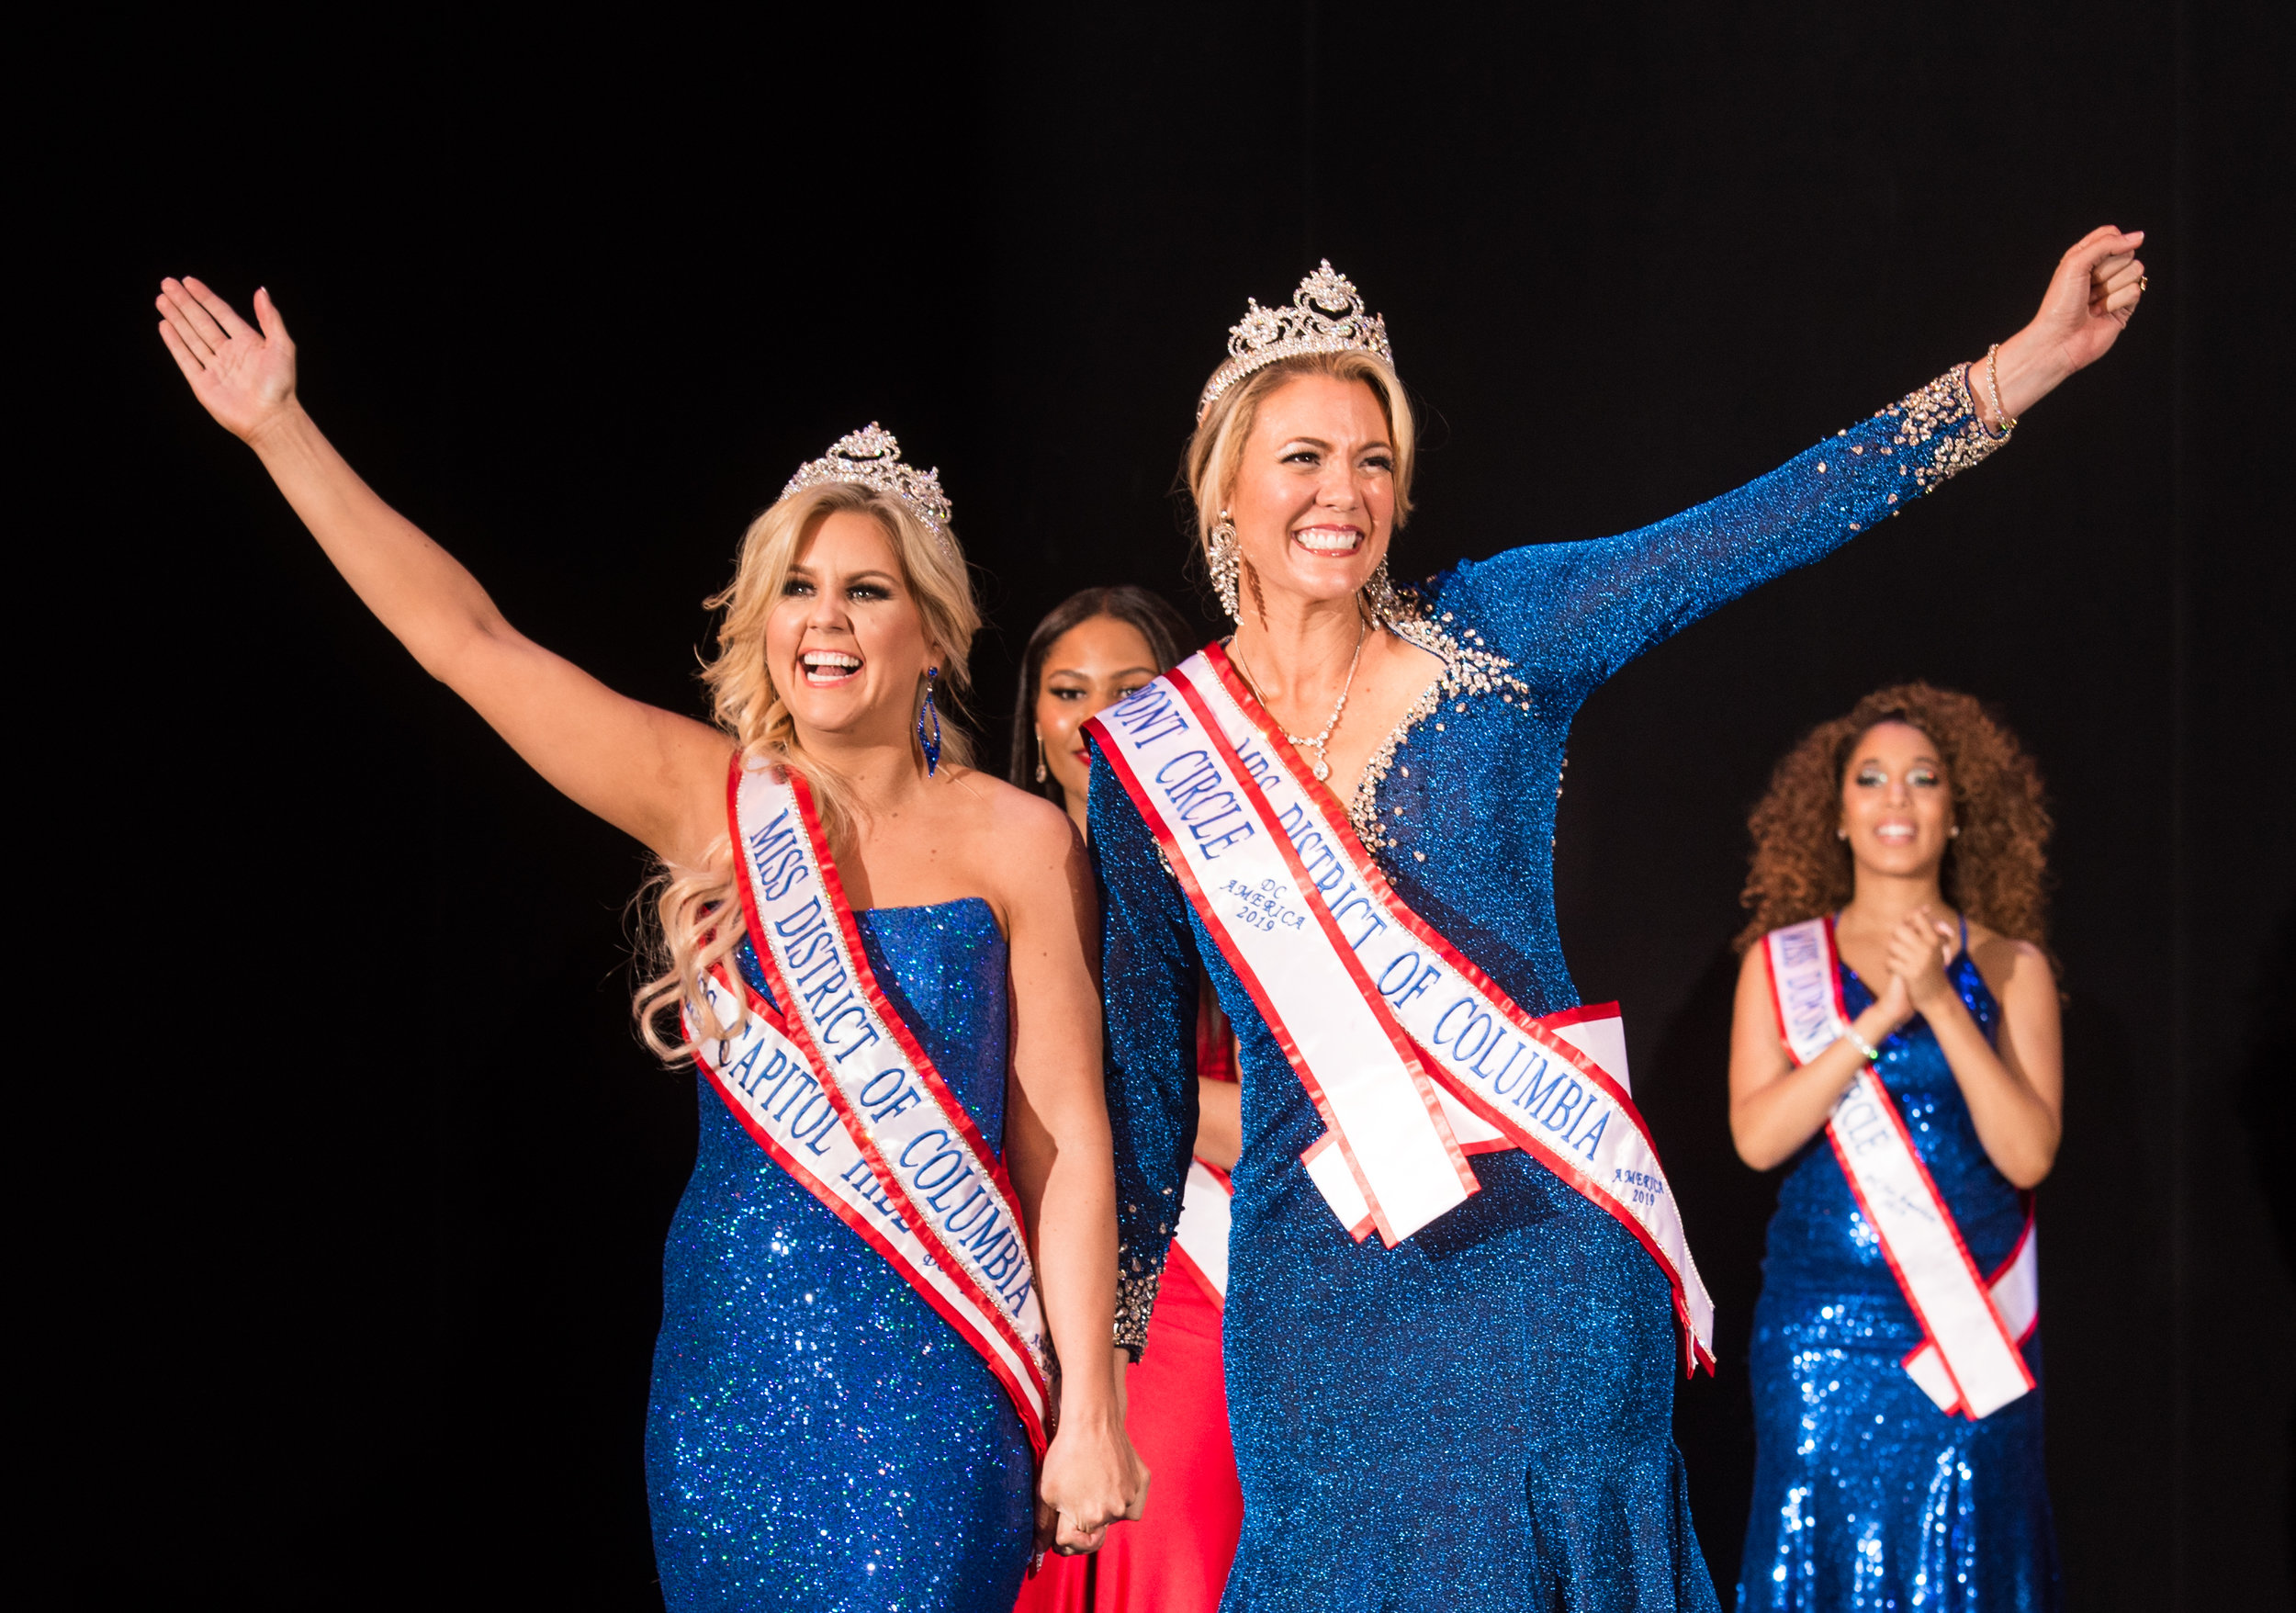 Megan Eunpu and Nikki Noya wave to the crowd after being crowned Miss DC for America and Mrs. DC America, respectivly.